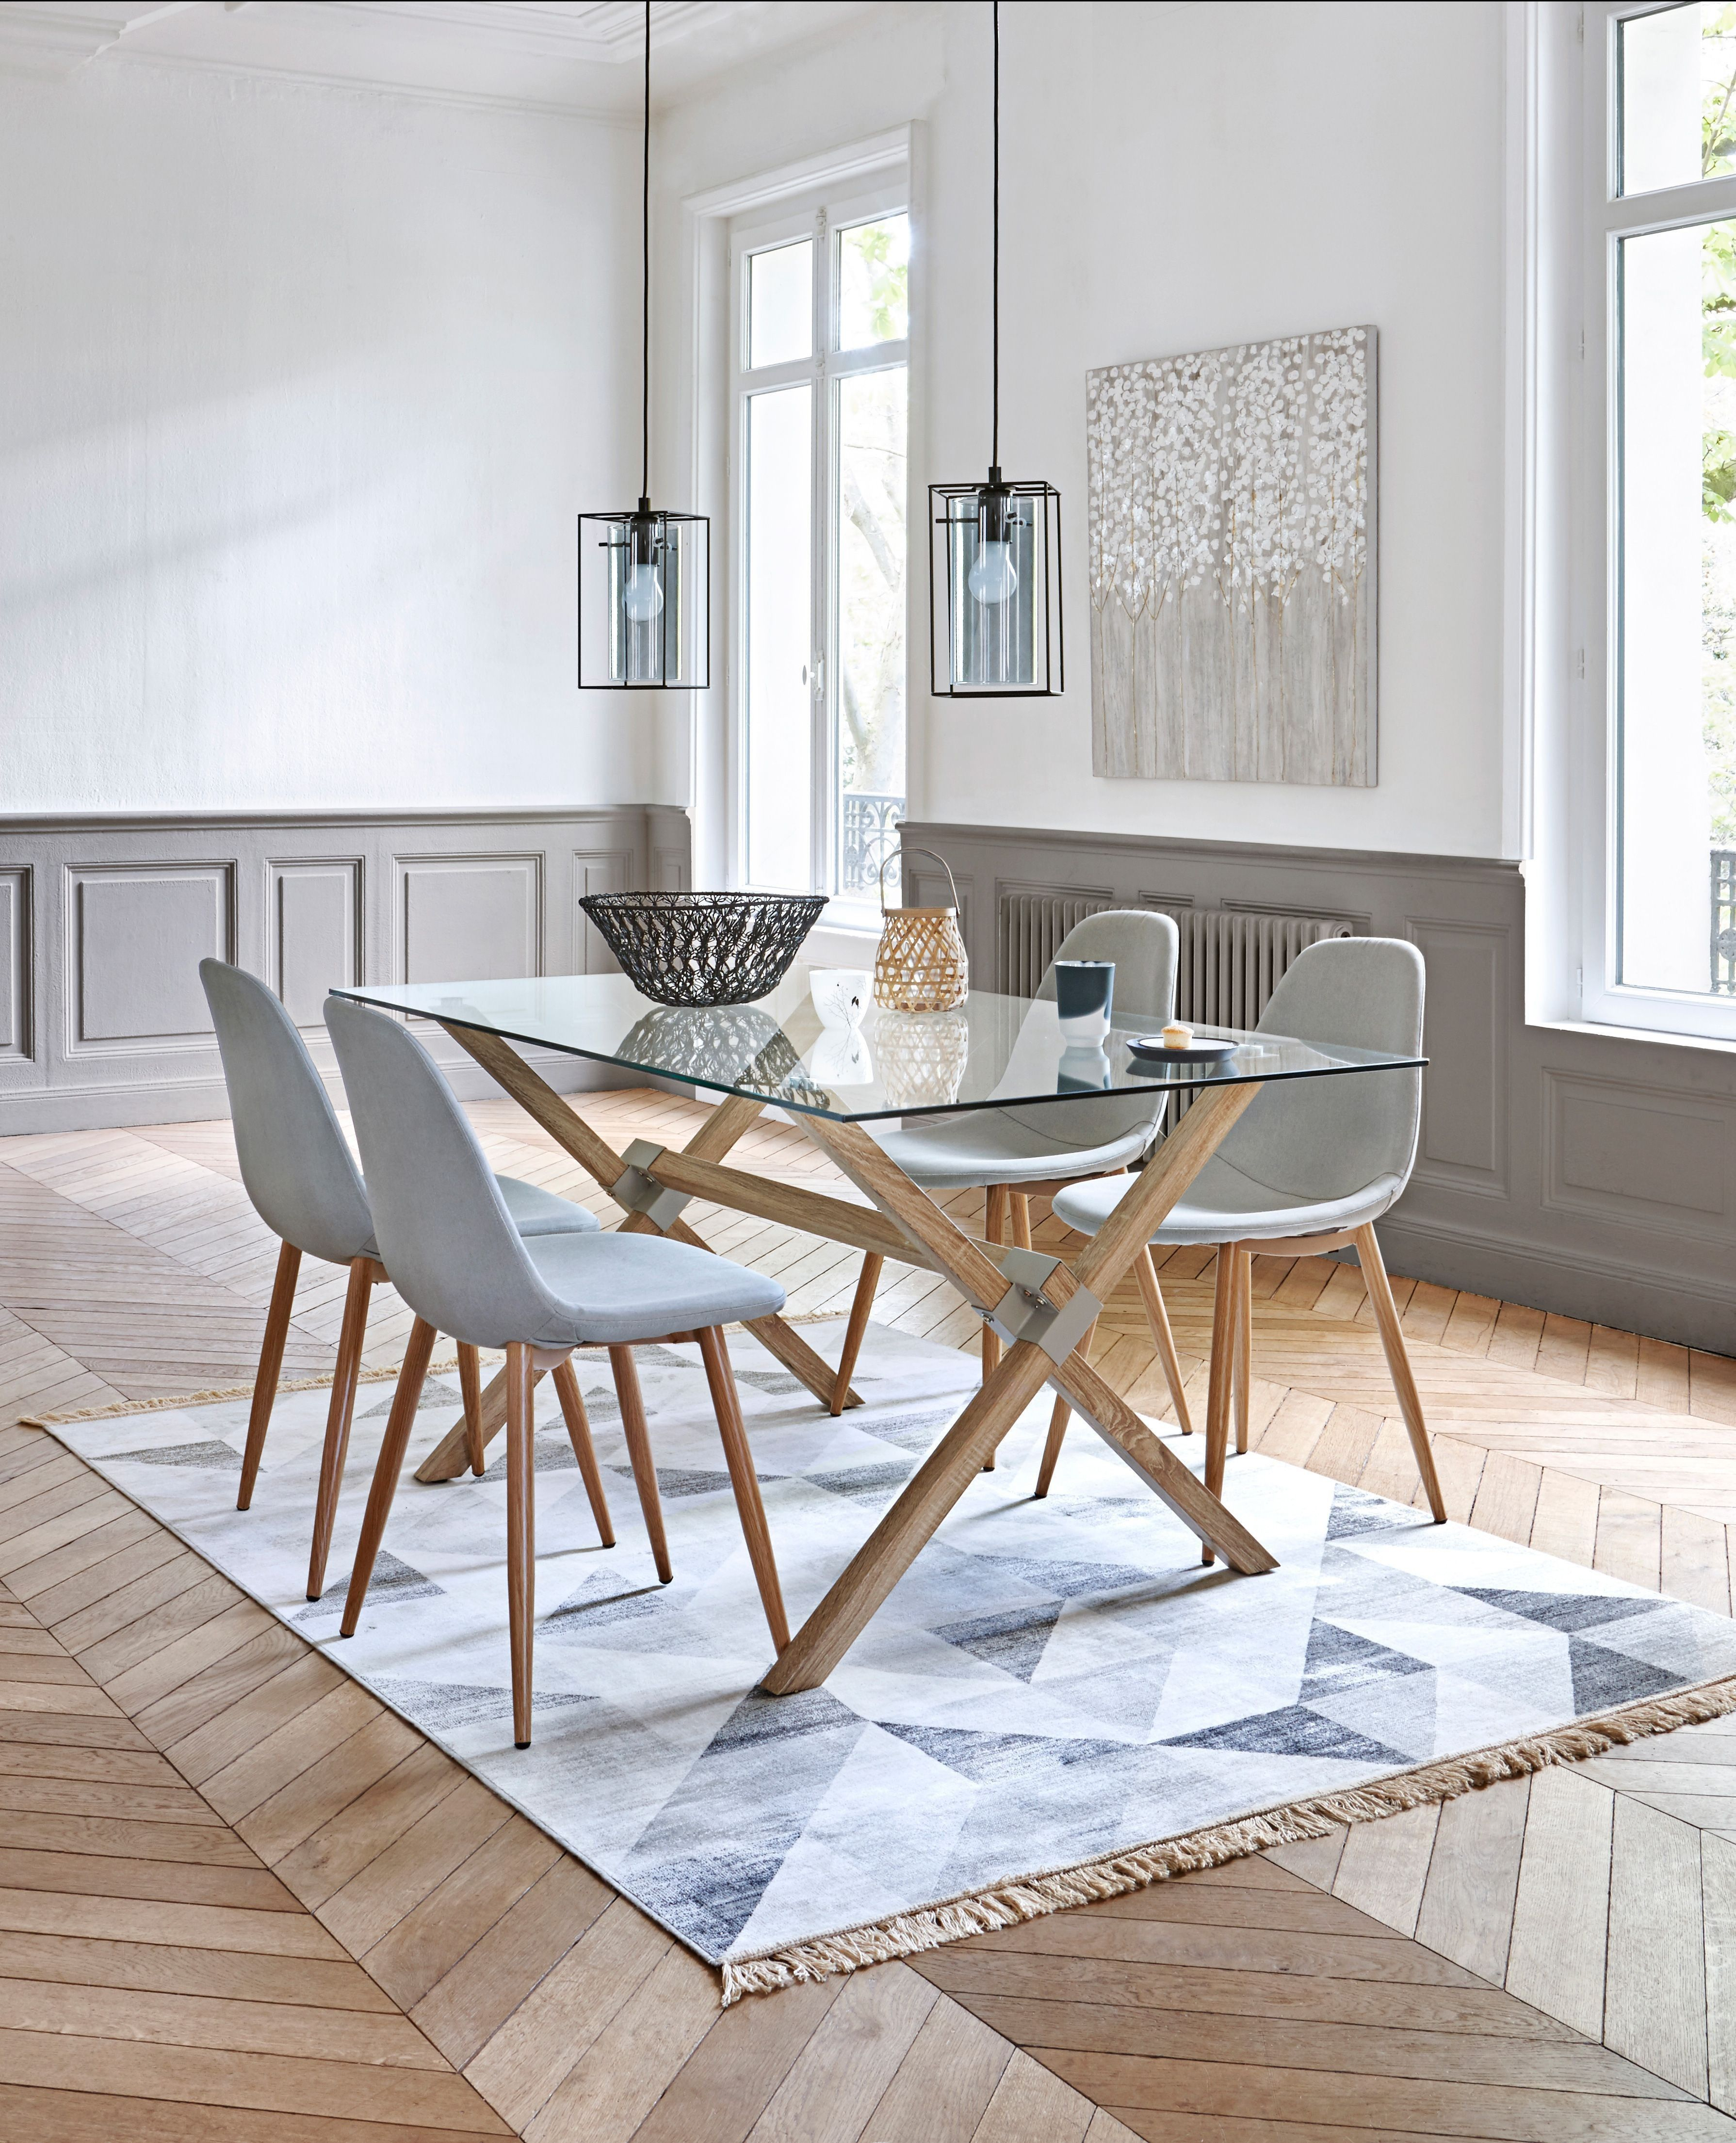 charmant meuble de salle a manger but meuble de salon unique meuble salon but idees de de scandinavian dining room dining room small white round dining table